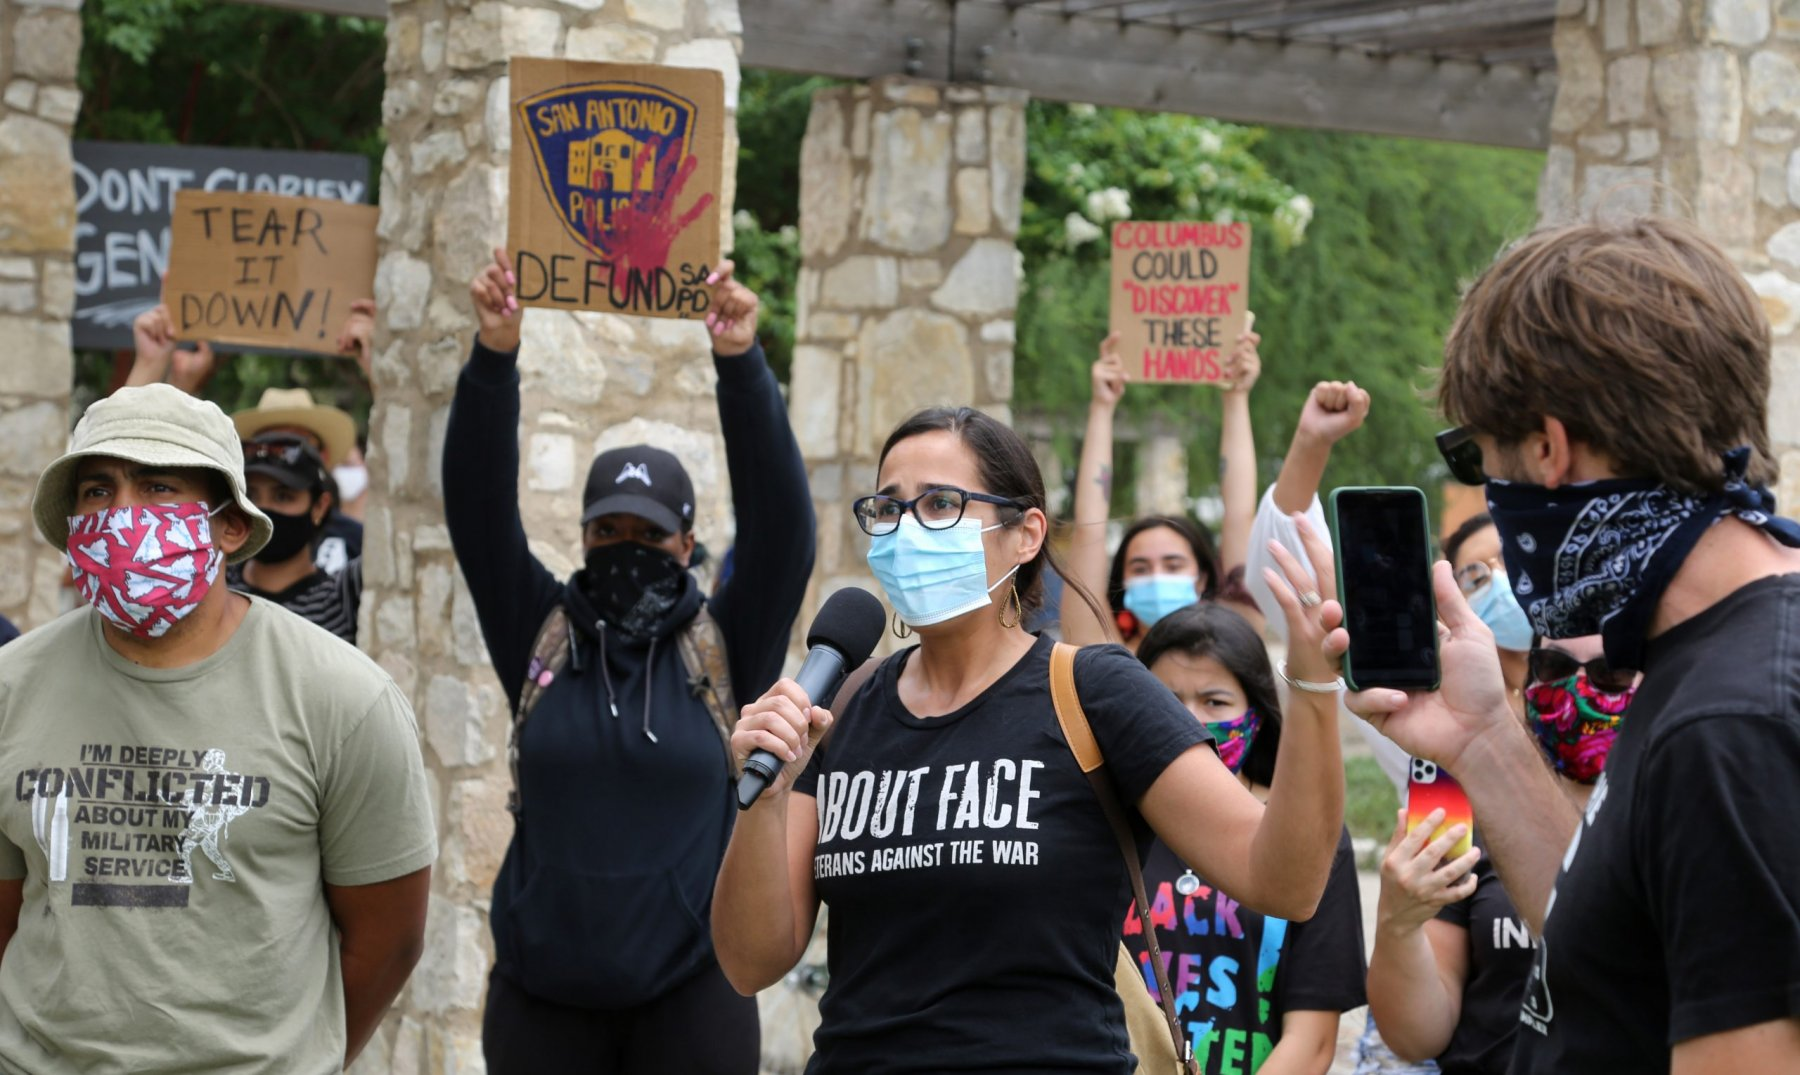 Rachell Tucker speaks to a group of roughly 50 advocates for the removal of the Christopher Columbus statue during a protest Saturday, June 27, 2020, at Columbus Park, 200 Columbus St. Photo by Ben Olivo | Heron